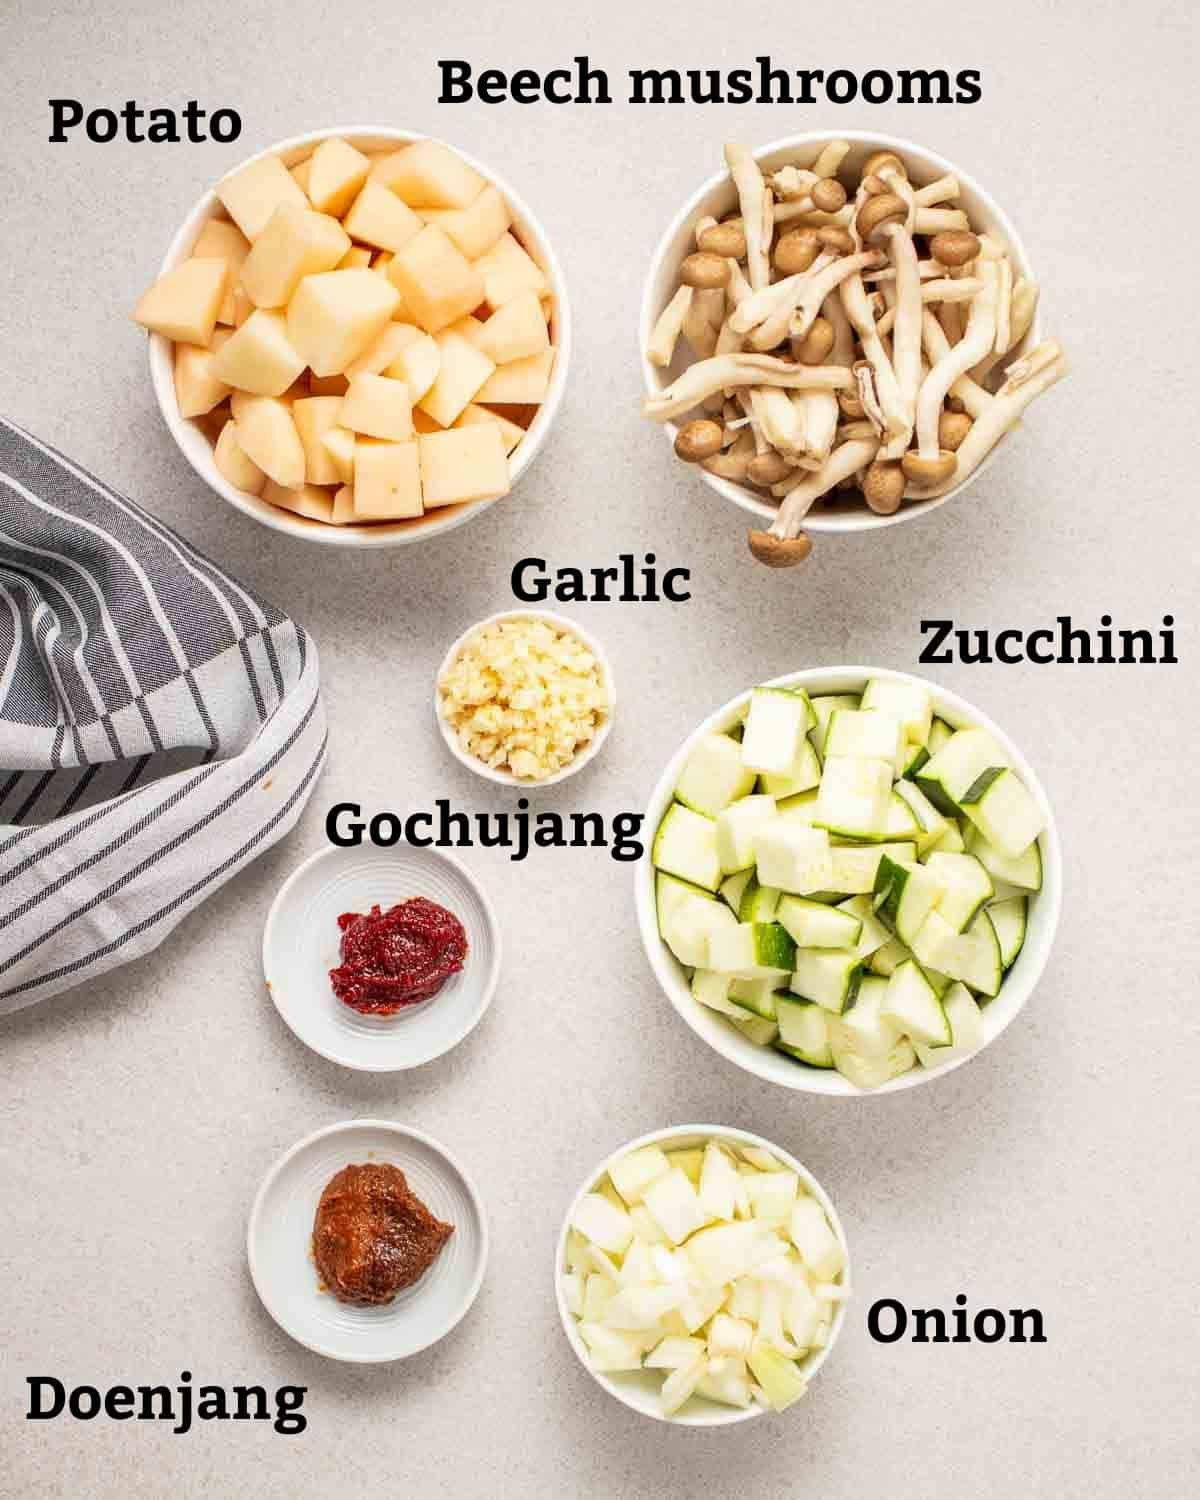 Ingredients needed like gochujang, doenjang, onion, garlic and vegetables on a grey background.